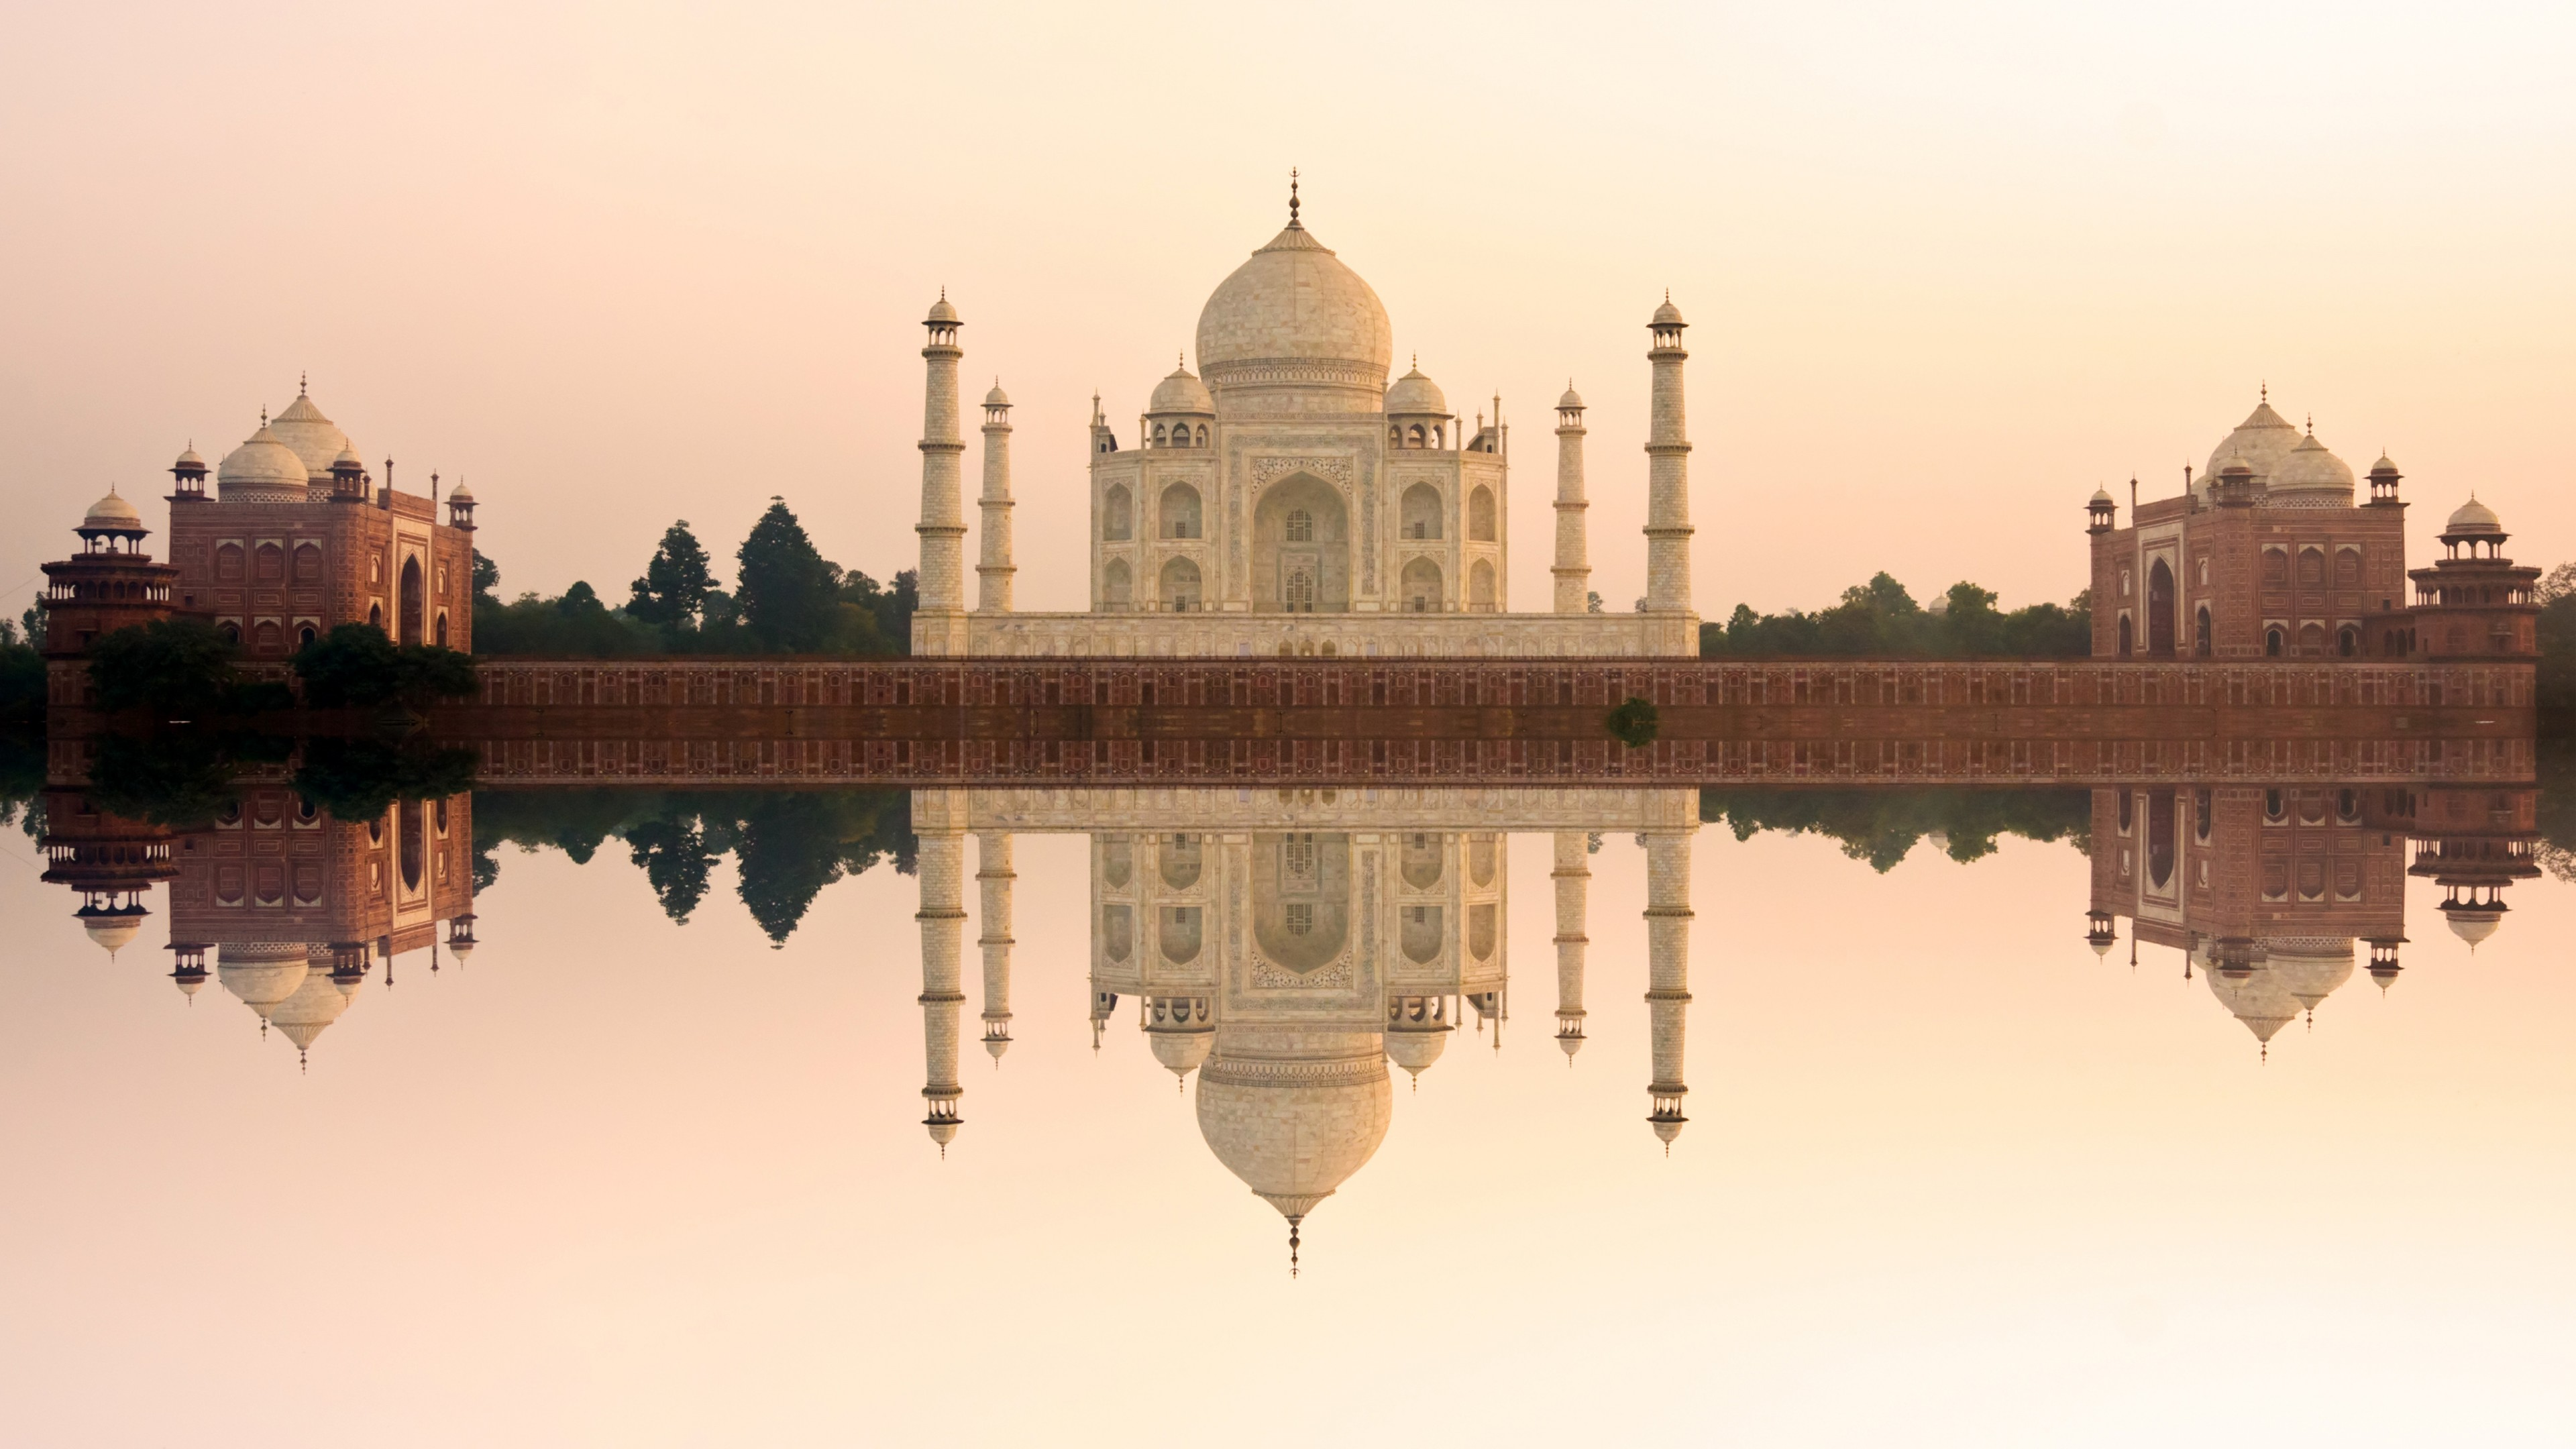 Taj Mahal 3d Wallpaper Download Taj Mahal India 5k Wallpapers Hd Wallpapers Id 19709